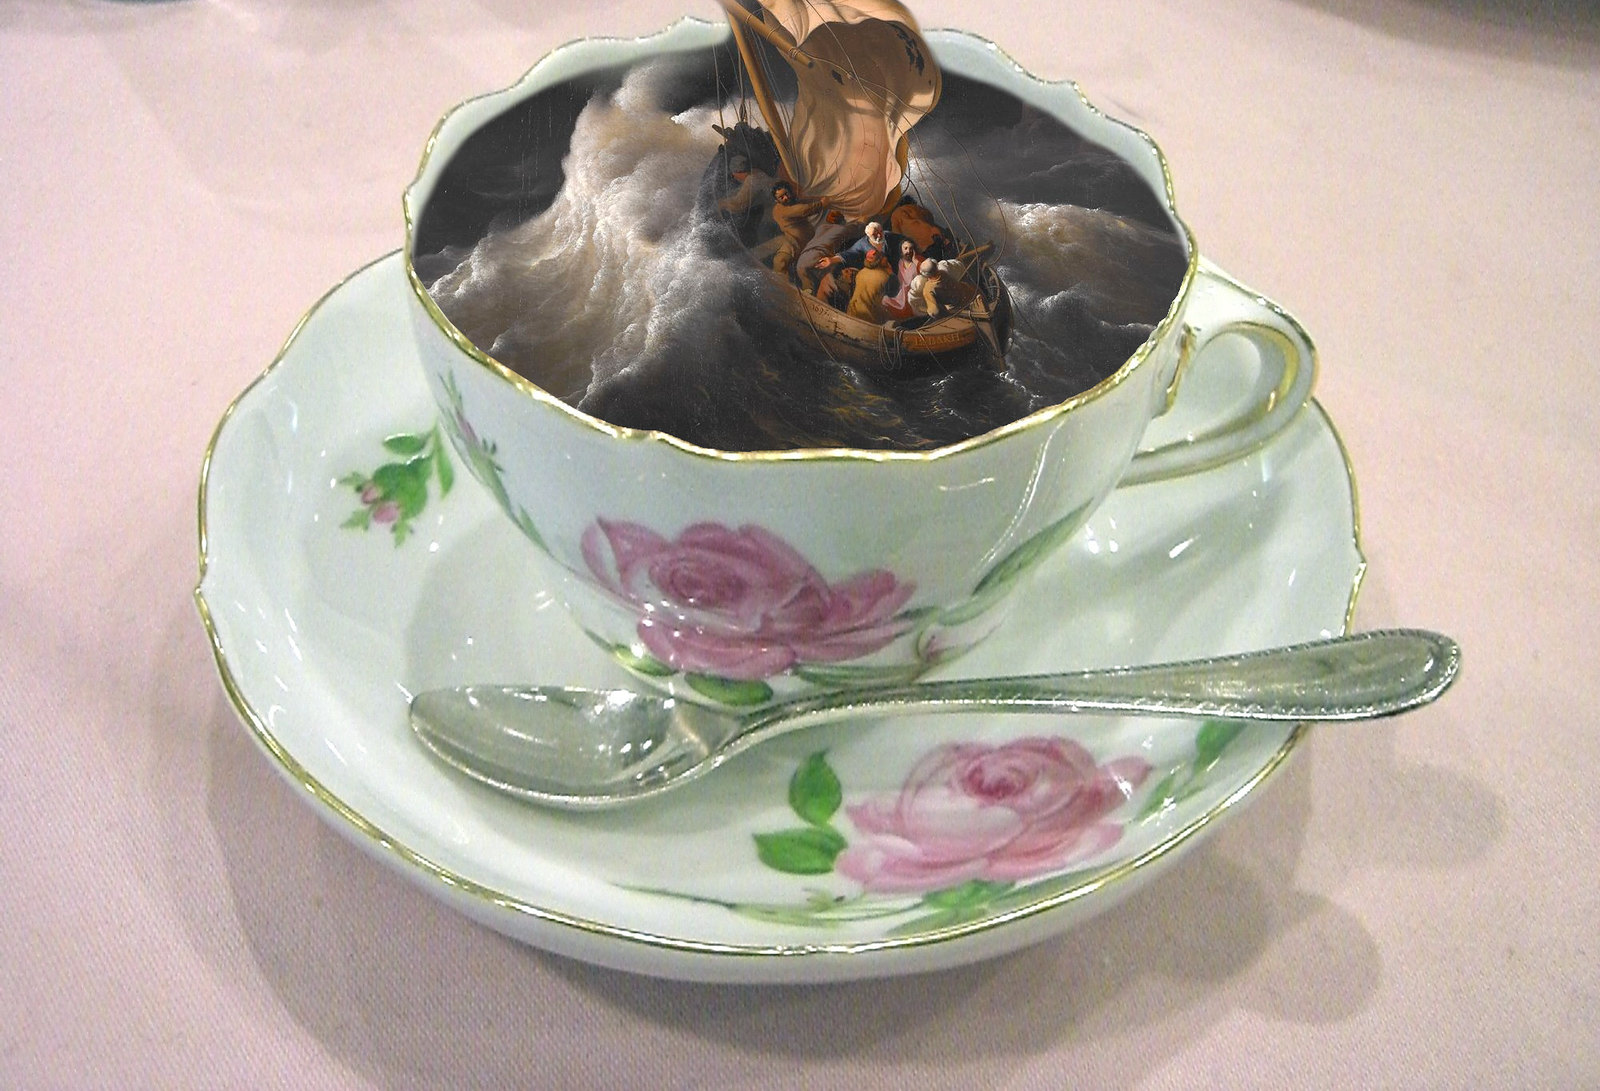 Storm in a teacup. Derivative of work credited to Miya